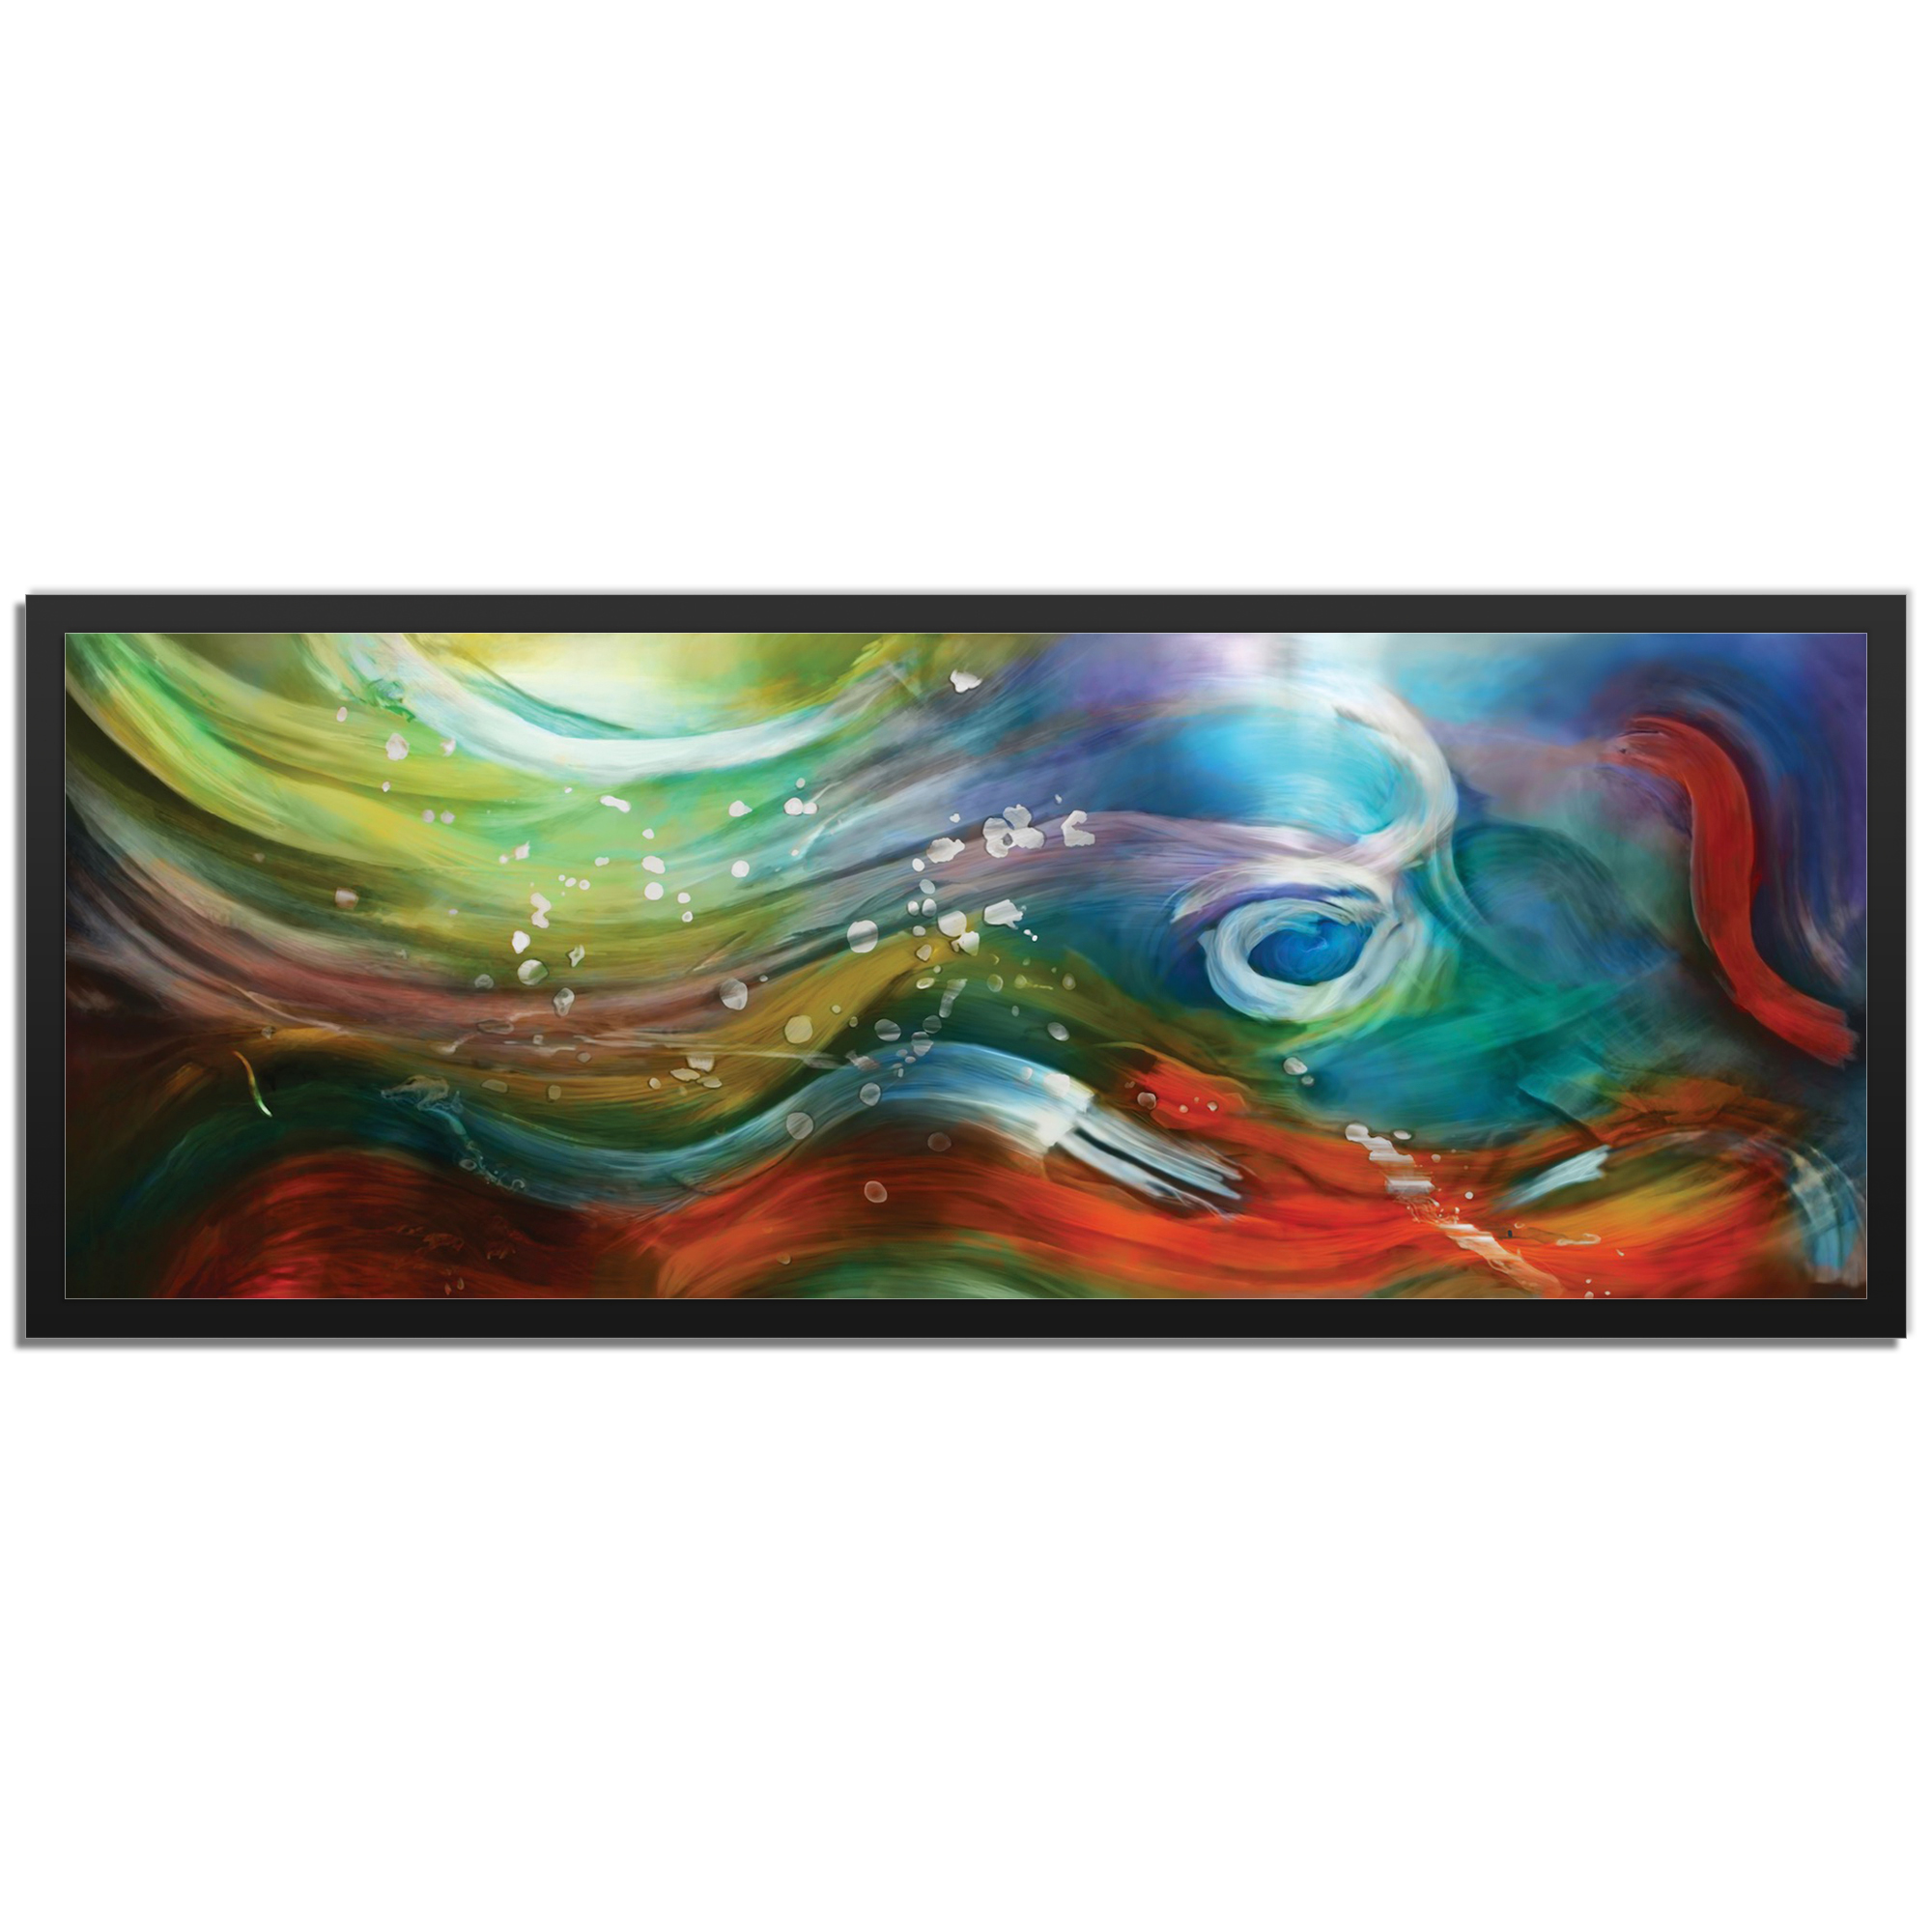 NAY 'Esne Composition Framed' 48in x 19in Abstract Rainbow Art Art on Colored Metal